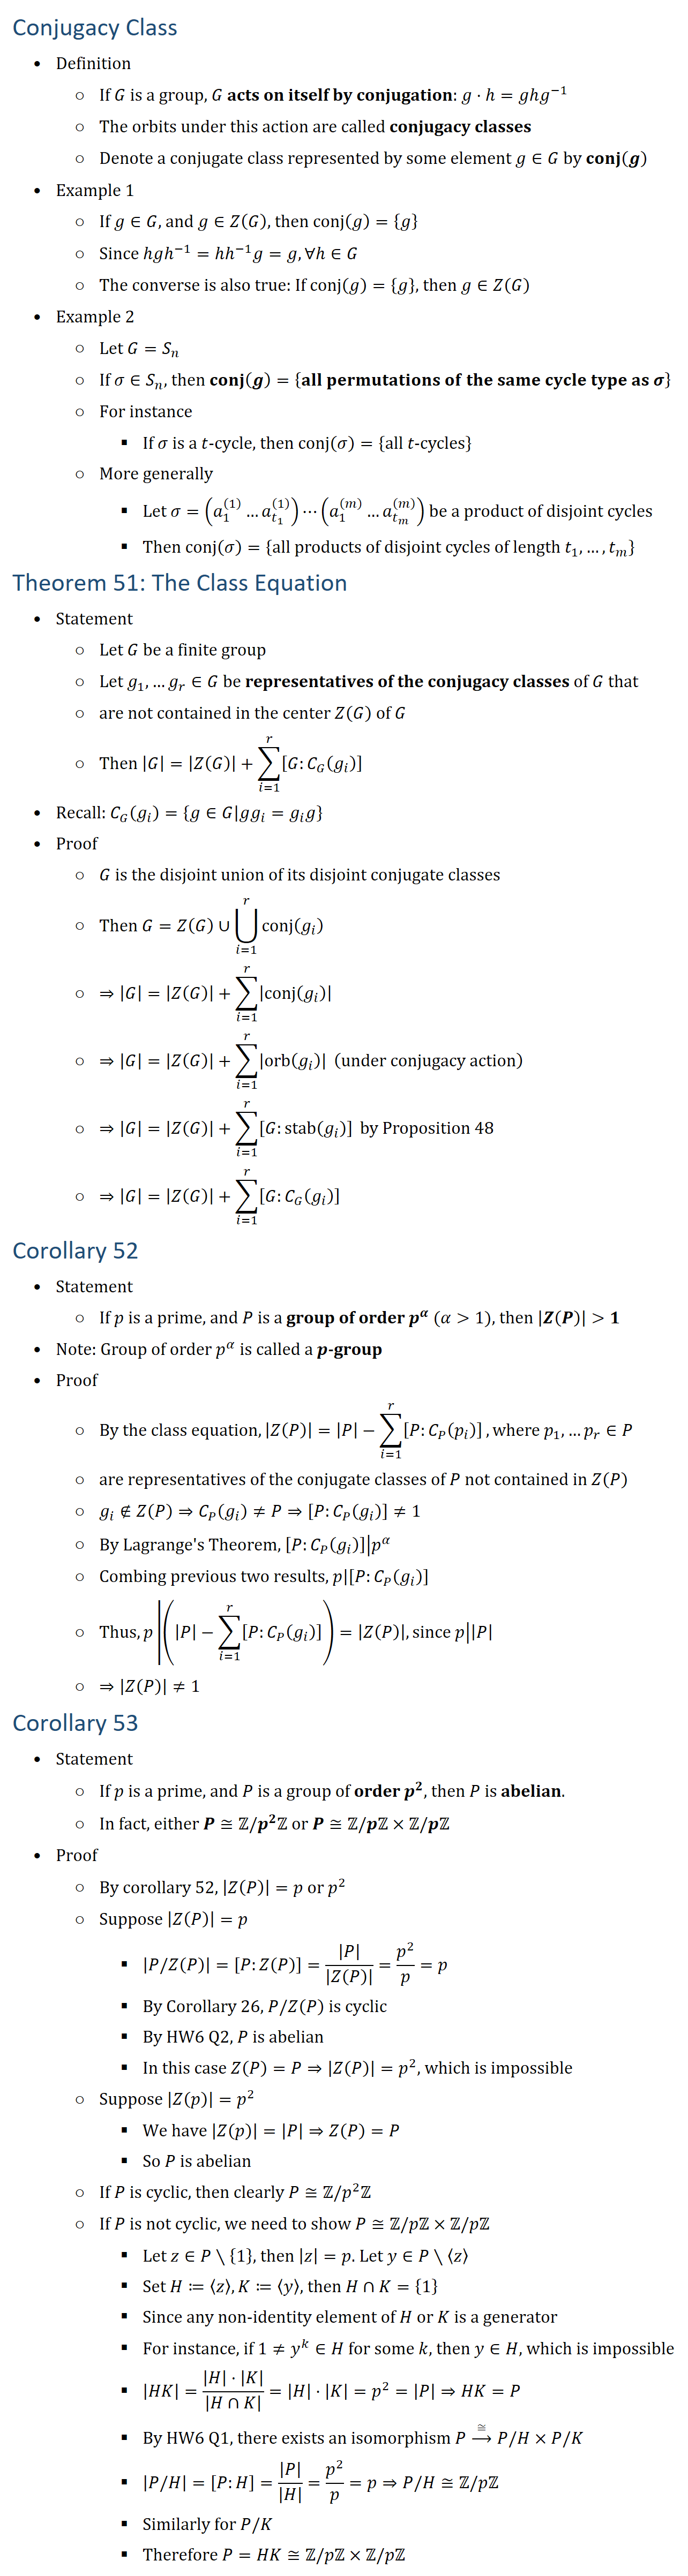 Conjugacy Class • Definition ○ If G is a group, G acts on itself by conjugation: g⋅h=ghg^(−1) ○ The orbits under this action are called conjugacy classes ○ Denote a conjugate class represented by some element g∈G by conj(g) • Example 1 ○ If g∈G, and g∈Z(G), then conj(g)={g} ○ Since hgh(−1)=hh(−1) g=g, ∀h∈G ○ The converse is also true: If conj(g)={g}, then g∈Z(G) • Example 2 ○ Let G=S_n ○ If σ∈S_n, then conj(g)={all permutations of the same cycle type as σ} ○ For instance § If σ is a t-cycle, then conj(σ)={all t-cycles} ○ More generally § Let σ=(a_1^((1) )…a_(t_1)^((1) ) )⋯(a_1^((m) )…a_(t_m)^((m) ) ) be a product of disjoint cycles § Then conj(σ)={all products of disjoint cycles of length t_1,…,t_m } Theorem 51: The Class Equation • Statement ○ Let G be a finite group ○ Let g_1,…g_r∈G be representatives of the conjugacy classes of G that ○ are not contained in the center Z(G) of G ○ Then |G|=|Z(G)|+∑_(i=1)^r▒[G:C_G (g_i )] • Recall: C_G (g_i )={g∈G│gg_i=g_i g} • Proof ○ G is the disjoint union of its disjoint conjugate classes ○ Then G=Z(G)∪⋃24_(i=1)^r▒conj(g_i ) ○ ⇒|G|=|Z(G)|+∑_(i=1)^r▒|conj(g_i )| ○ ⇒|G|=|Z(G)|+∑_(i=1)^r▒|orb(g_i )| (under conjugacy action) ○ ⇒|G|=|Z(G)|+∑_(i=1)^r▒[G:stab(g_i )] by Proposition 48 ○ ⇒|G|=|Z(G)|+∑_(i=1)^r▒[G:C_G (g_i )] Corollary 52 • Statement ○ If p is a prime, and P is a group of order p^α (α  1), then |Z(P)|  1 • Note: Group of order p^α is called a p-group • Proof ○ By the class equation, |Z(P)|=|P|−∑_(i=1)^r▒[P:C_P (p_i )] , where p_1,…p_r∈P ○ are representatives of the conjugate classes of P not contained in Z(P) ○ g_i∉Z(P)⇒C_P (g_i )≠P⇒[P:C_P (g_i )]≠1 ○ By Lagrange  s Theorem, ├ [P:C_P (g_i )]┤ |p^α ┤ ○ Combing previous two results, ├ p┤|├ [P:C_P (g_i )]┤ ○ Thus, ├ p┤ |(|P|−∑_(i=1)^r▒[P:C_P (g_i )] )┤=|Z(P)|, since ├ p┤ ||P|┤ ○ ⇒|Z(P)|≠1 Corollary 53 • Statement ○ If p is a prime, and P is a group of order p^2, then P is abelian. ○ In fact, either P≅Z\/p^2 Z or P≅Z\/pZ×Z\/pZ • Proof ○ By corollary 52, |Z(P)|=p or p^2 ○ Supp